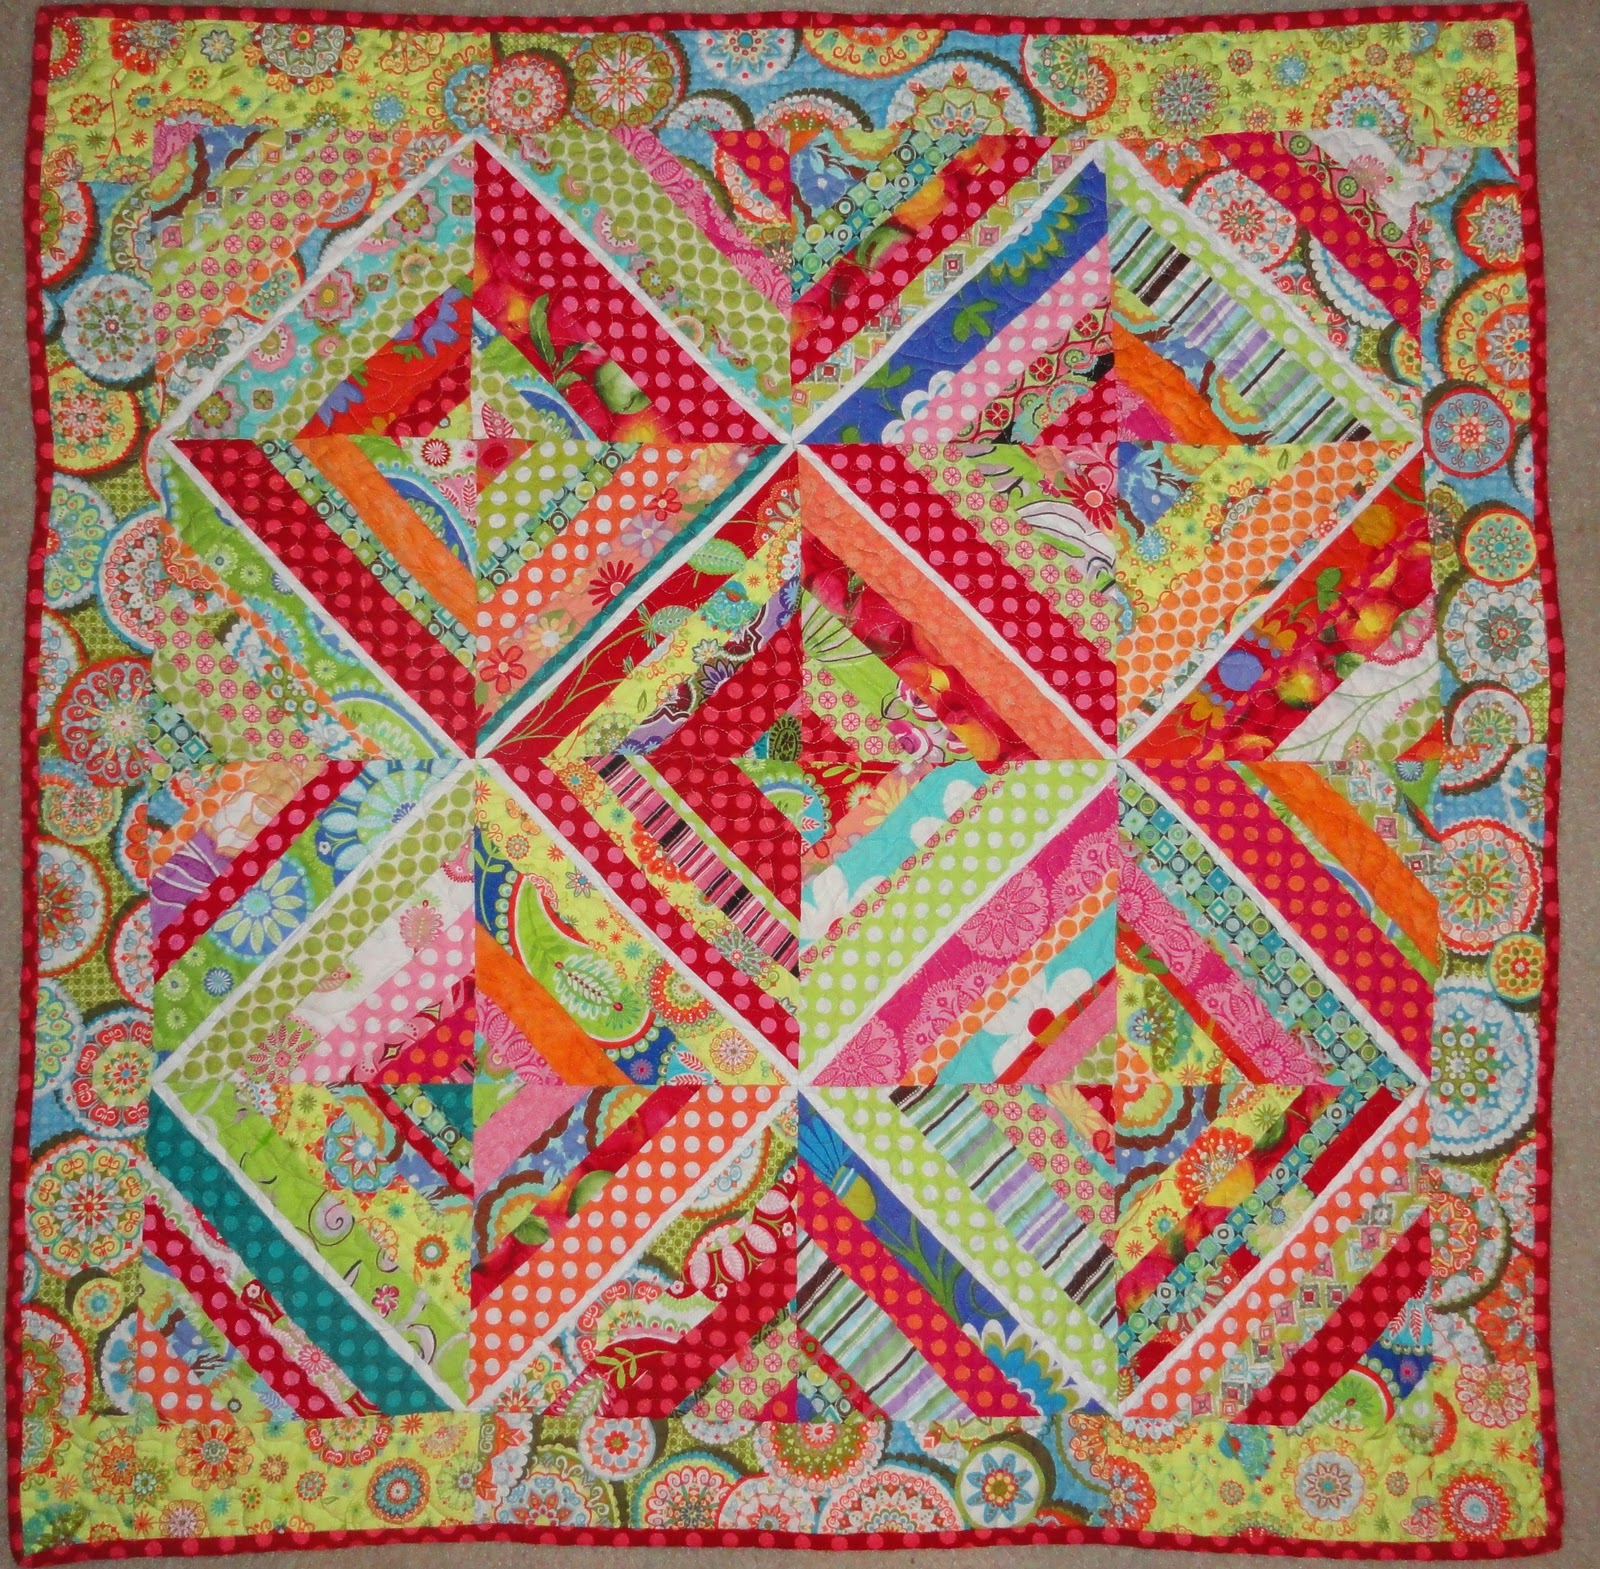 Oxford Impressions Baby String Quilt Jenean Morrison Free